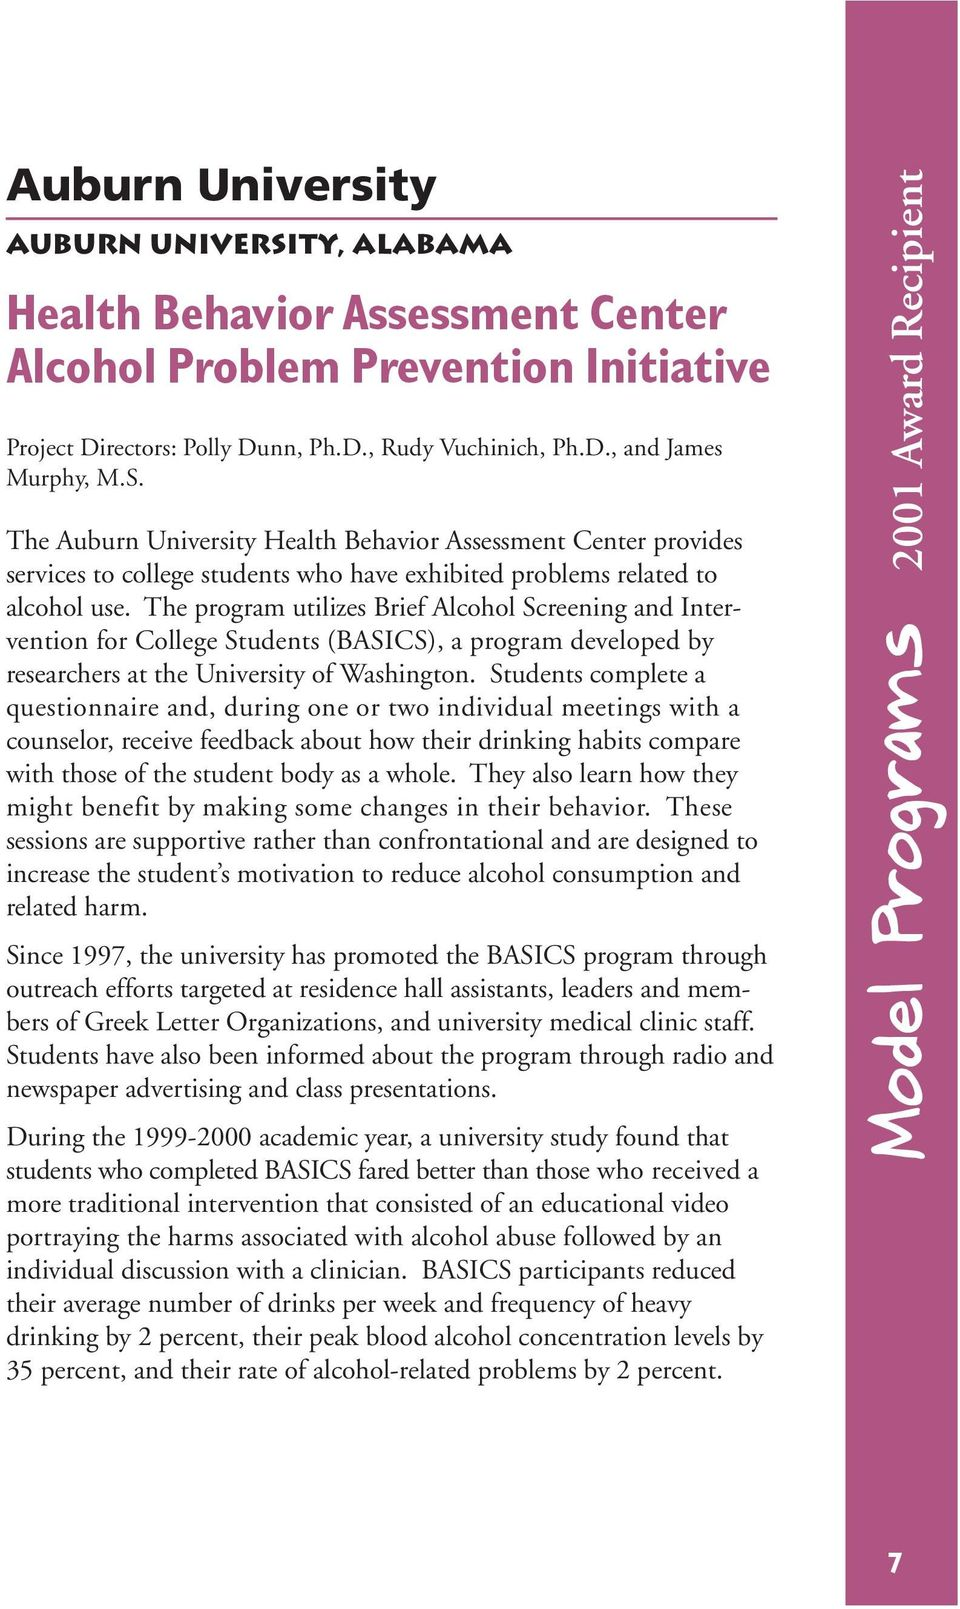 The program utilizes Brief Alcohol Screening and Intervention for College Students (BASICS), a program developed by researchers at the University of Washington.